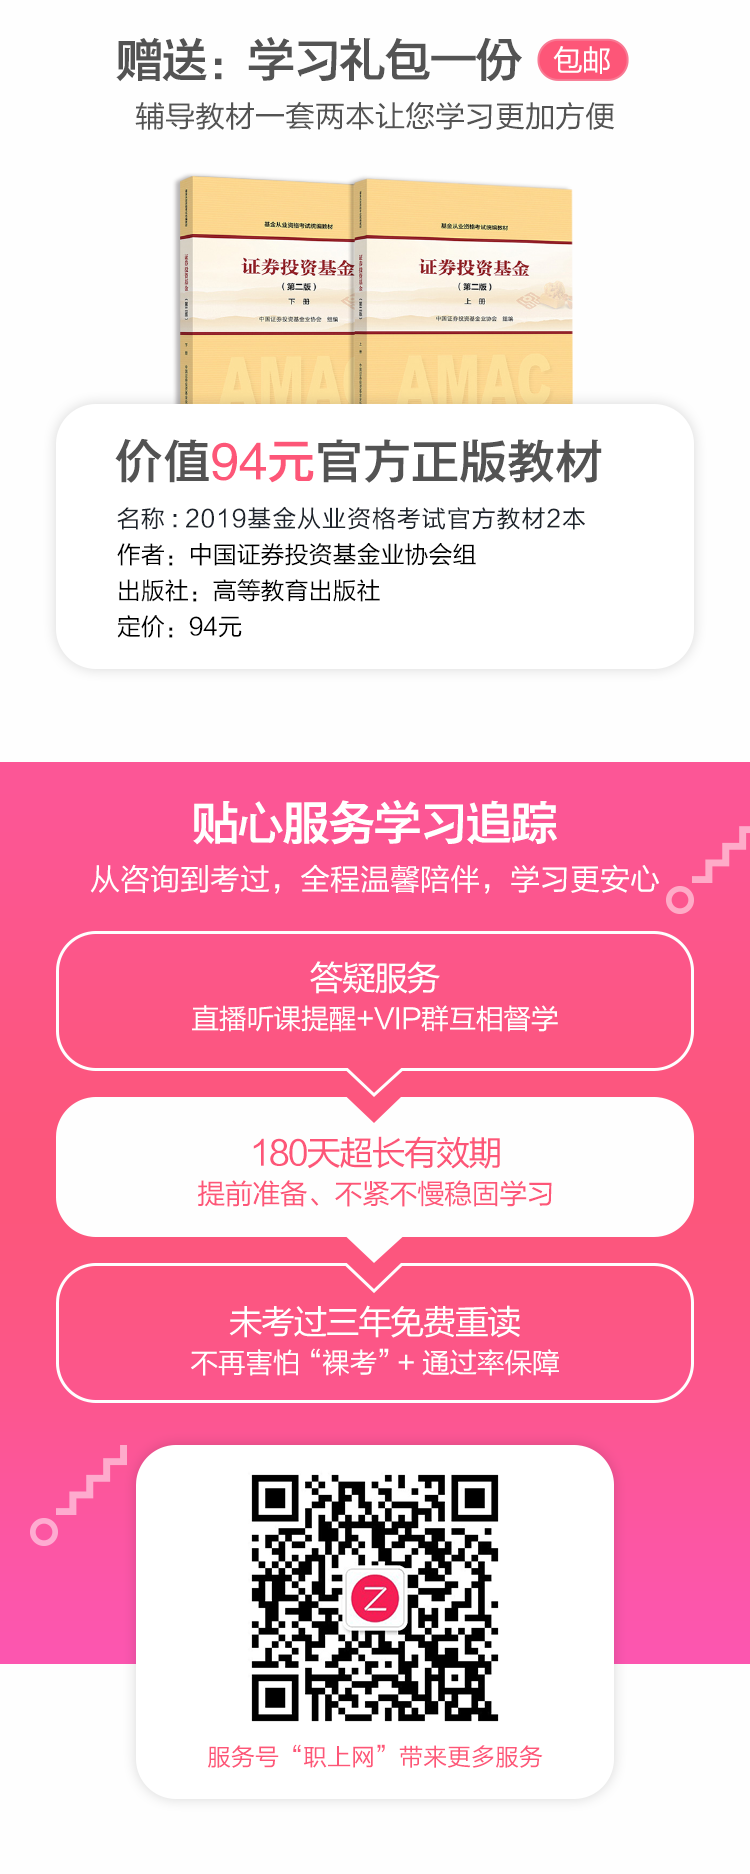 https://img4.zhiupimg.cn/group1/M00/03/7A/rBAUDFwGWMuAD7VoAAP5y_taKRg377.png